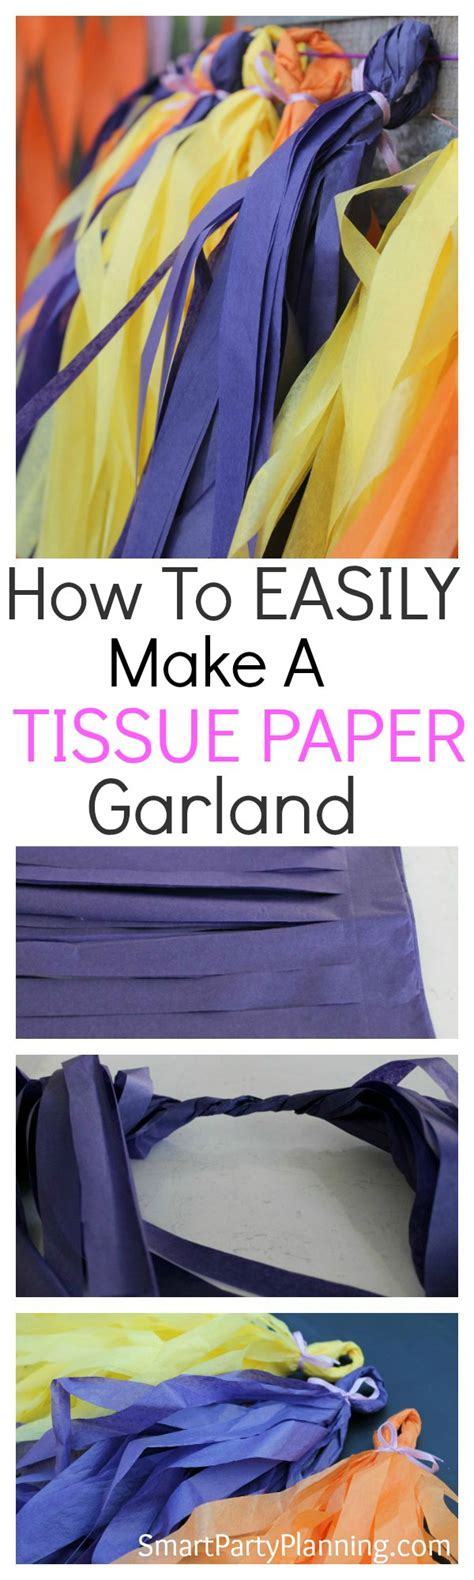 How To Make Tissue Paper Garland - how to make a tissue paper garland the easy way